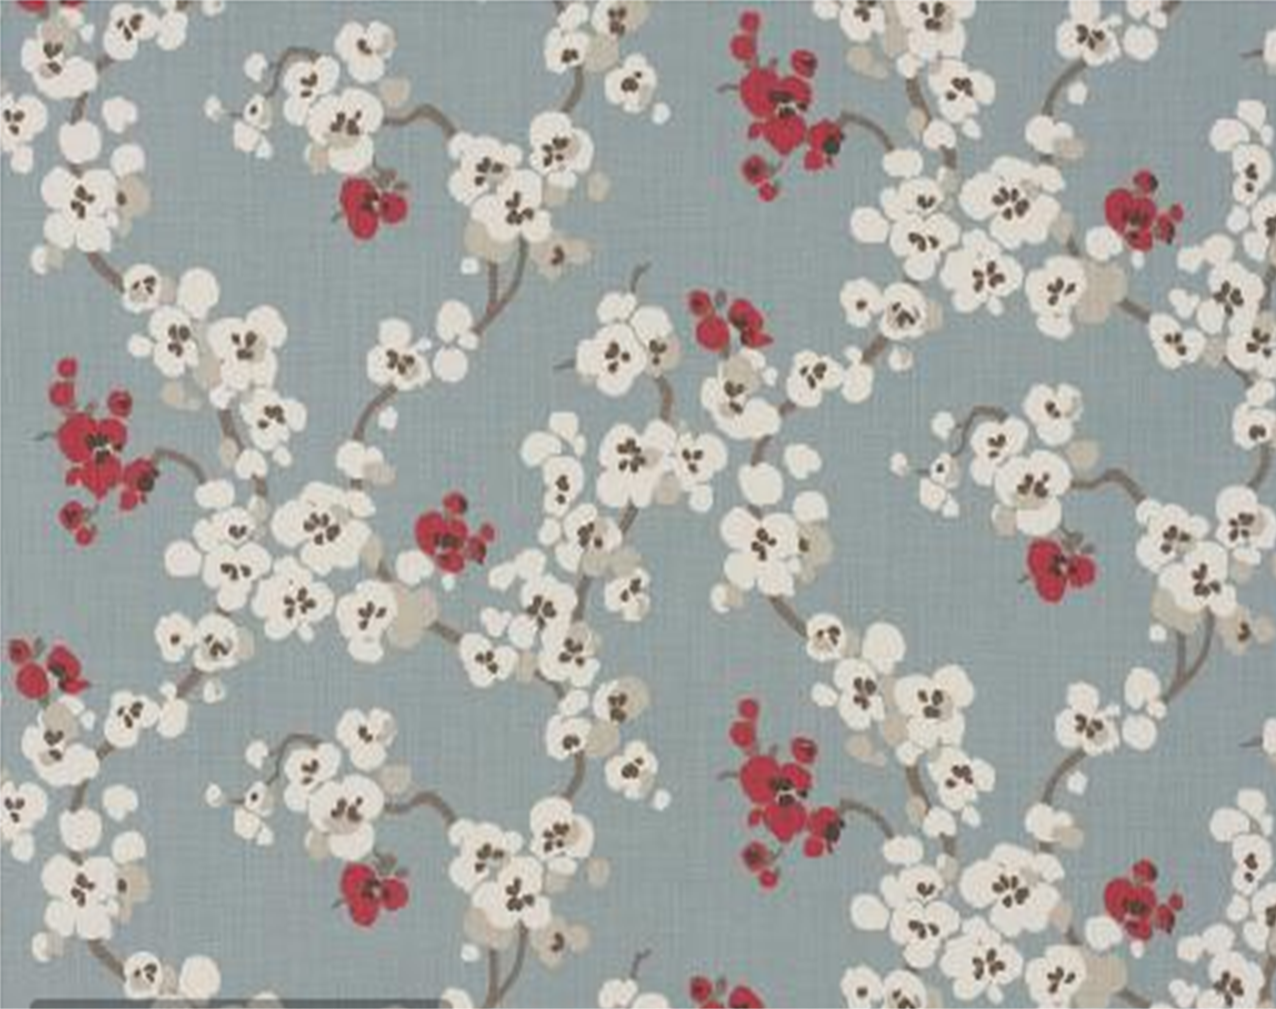 floral print fabrics from the UK | Romo fabrics have the most beautiful modern floral prints ...